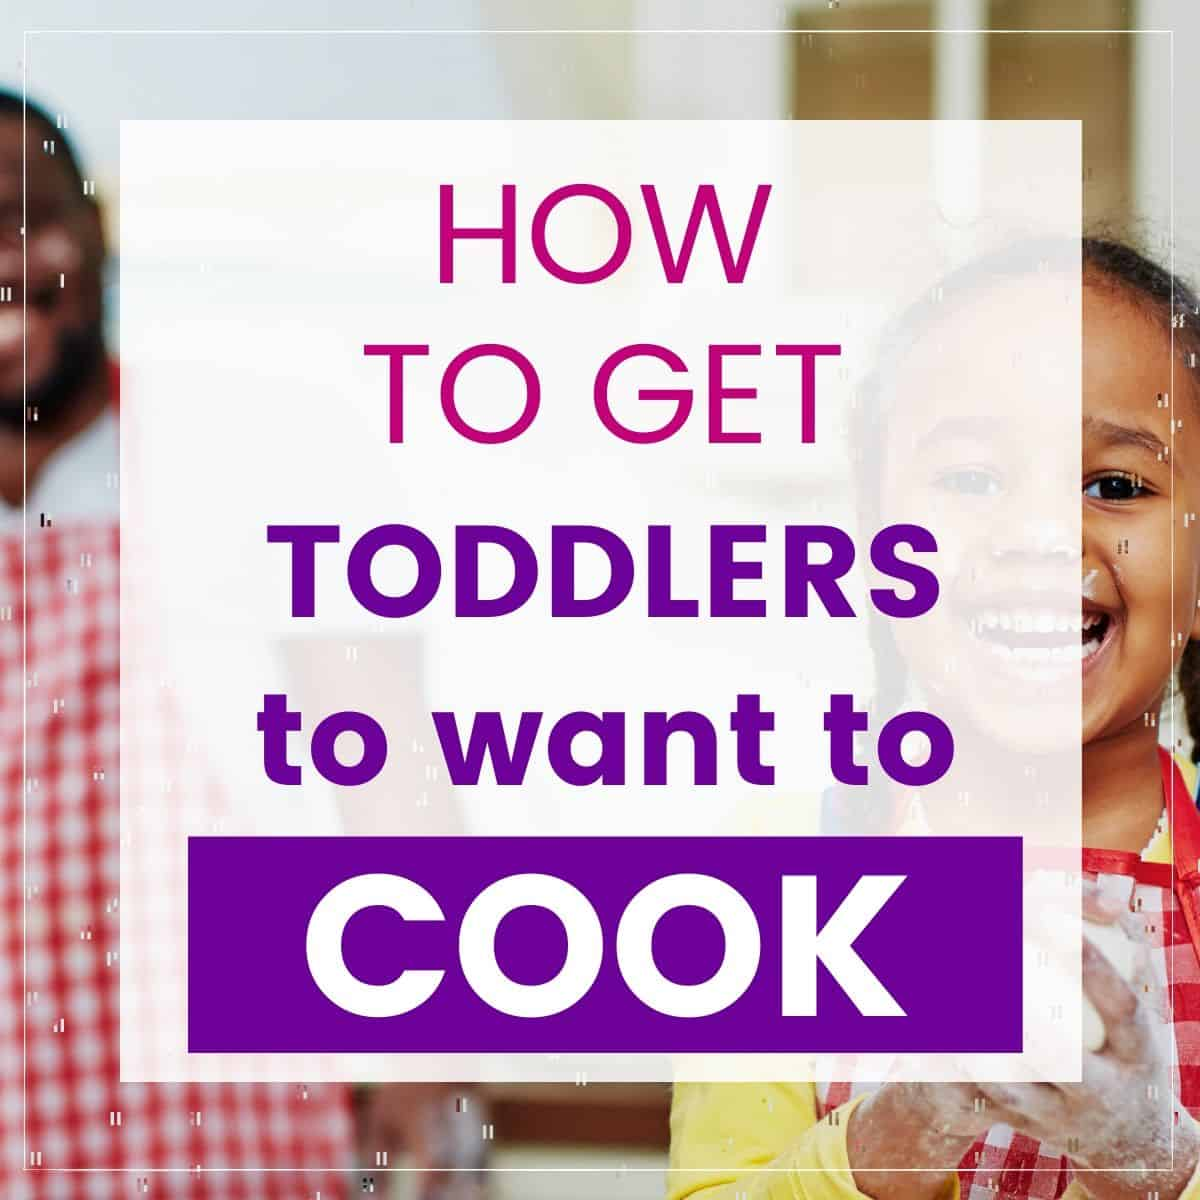 how to get toddlers to want to cook graphic